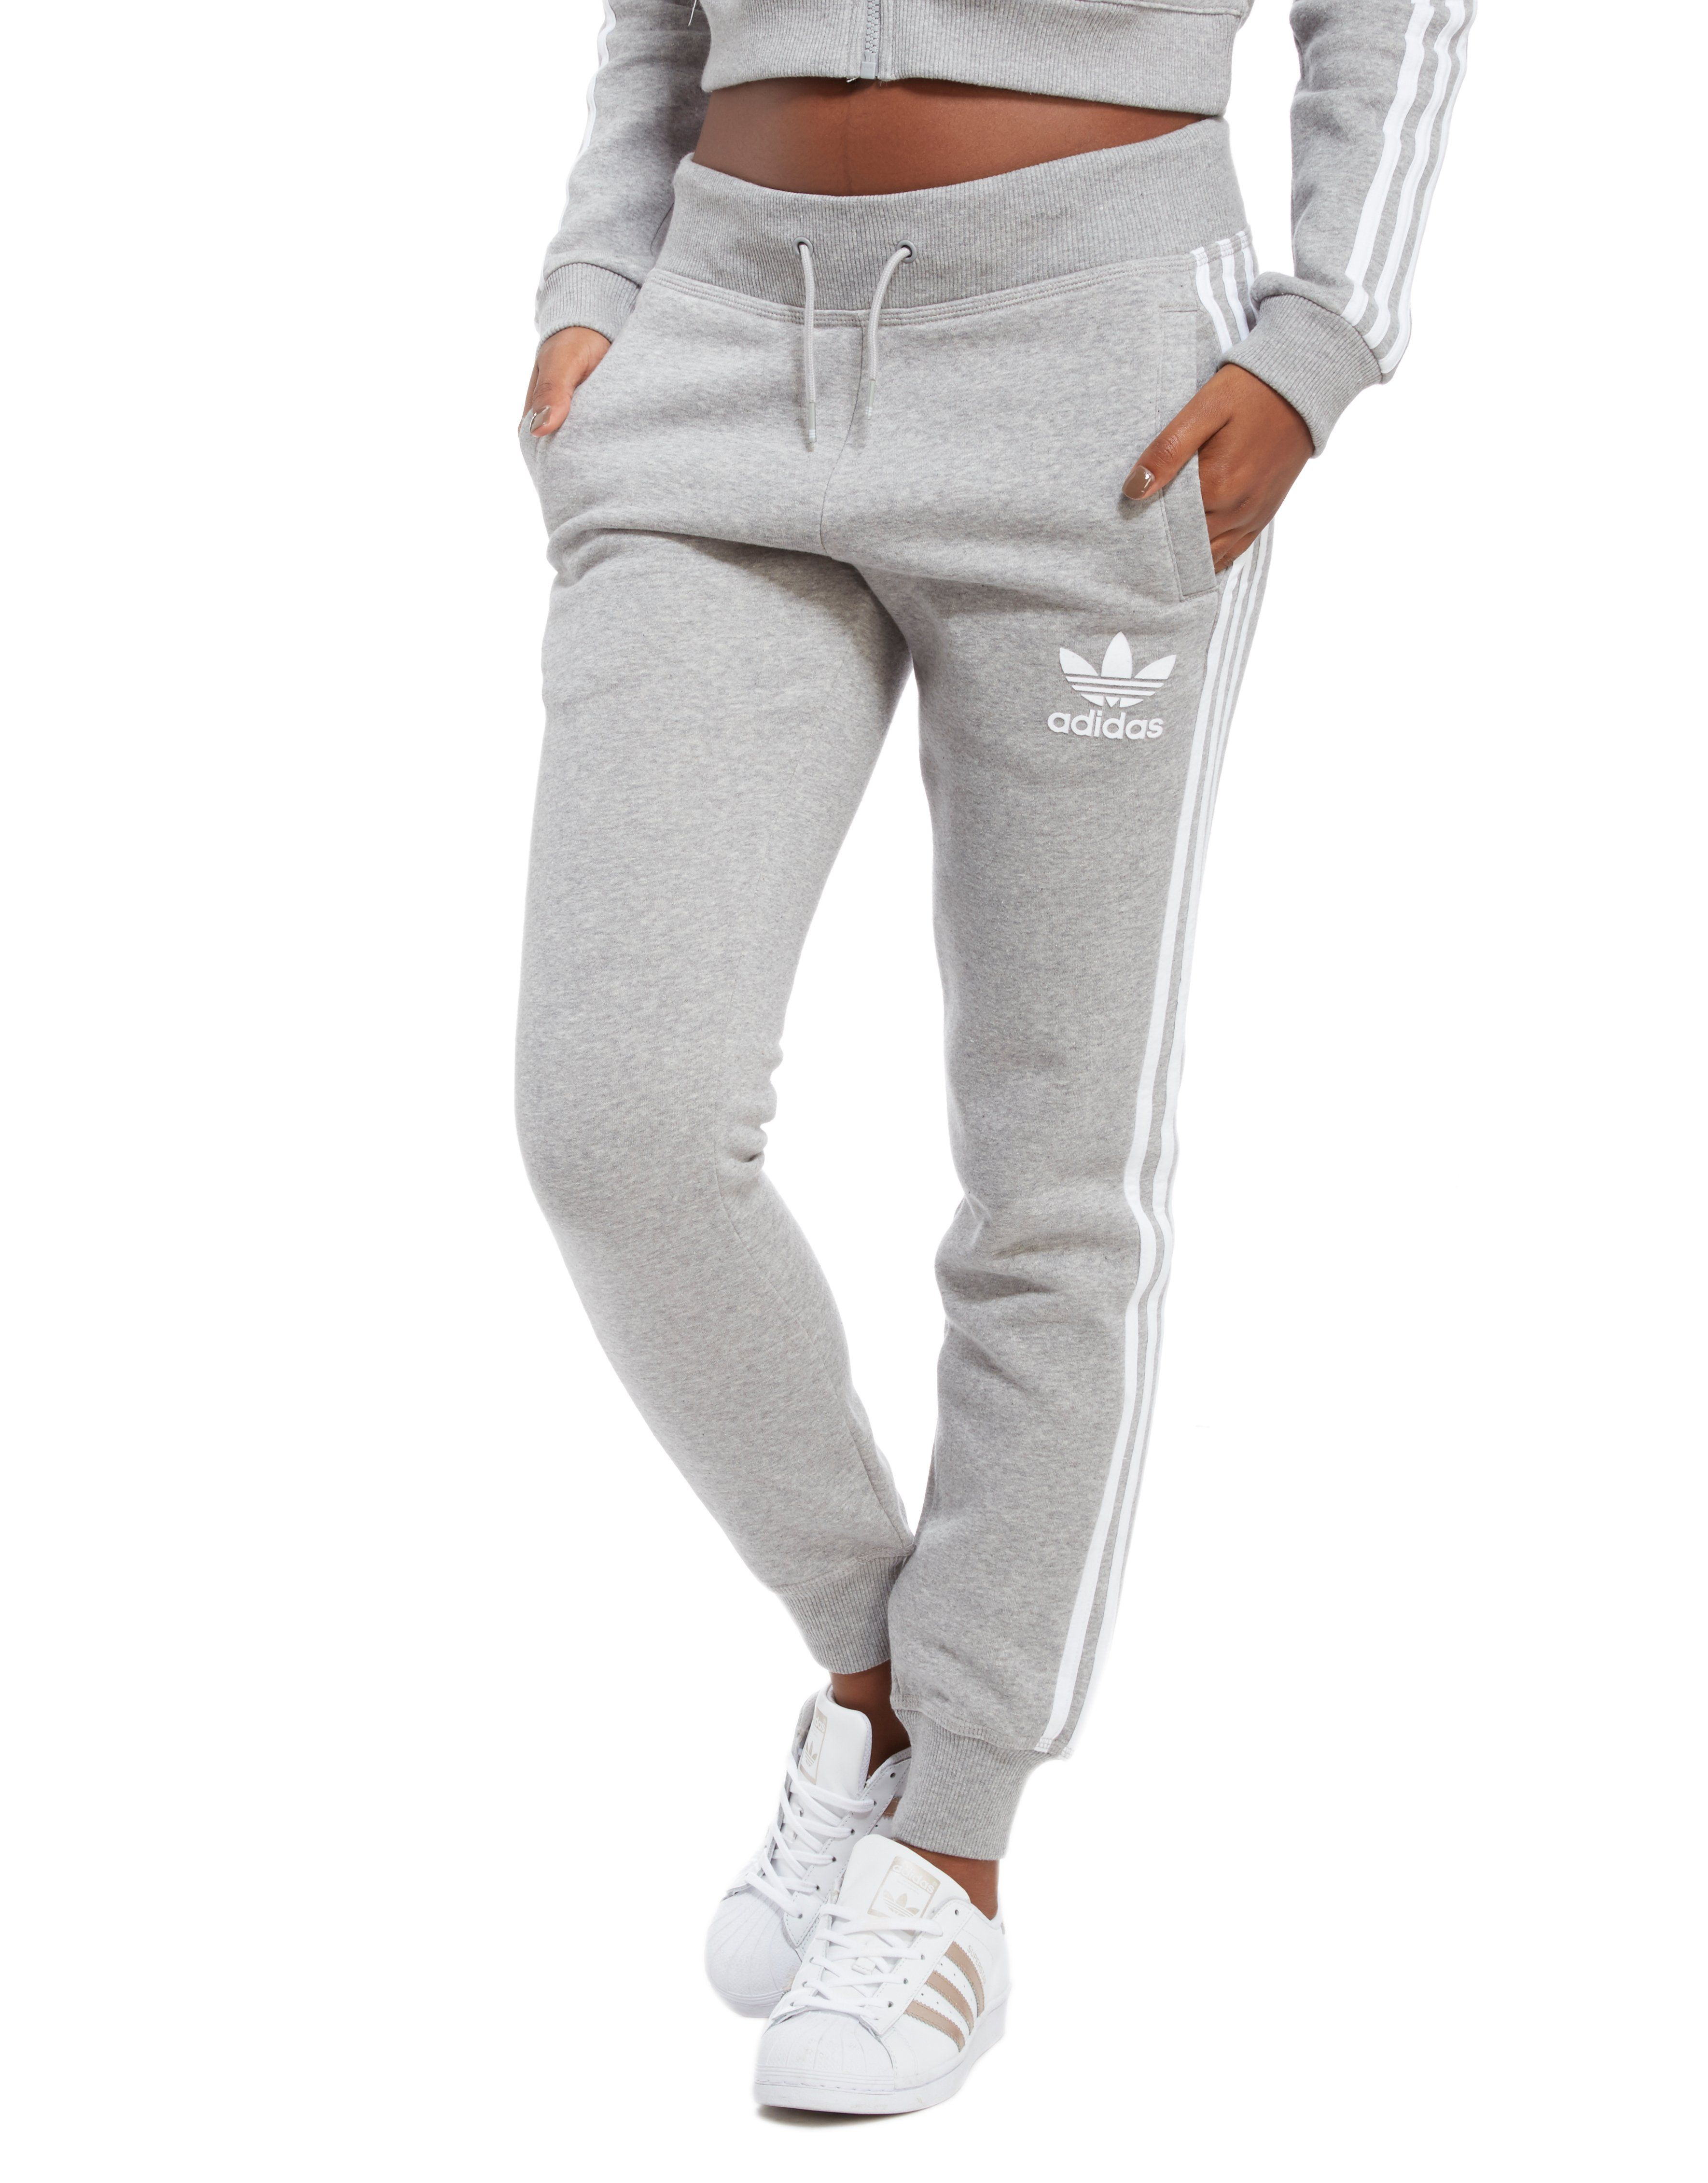 Luxury Were Sure Youll Find The Right Ones To Rock In Our List Of The 15 Best Mens Sweatpants  Give These Mens Joggers A 42 Out Of 5star Rating Average Theyre Available In 15 Different Colors, Sho